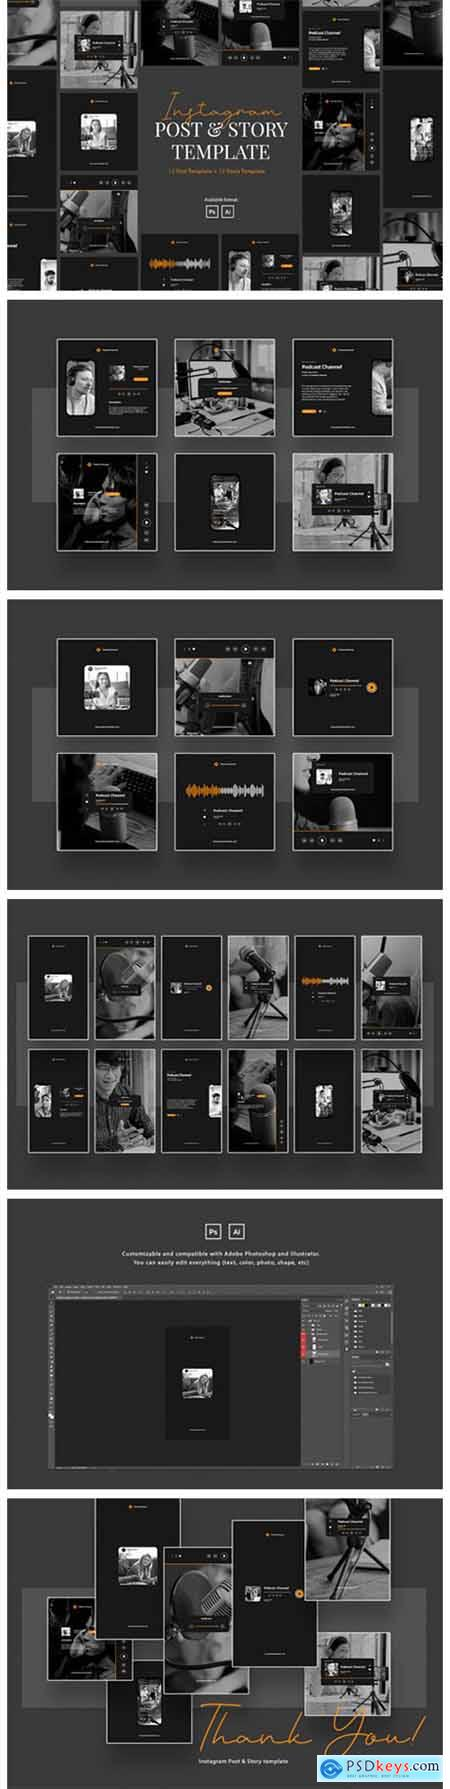 Podcast Instagram Post & Story Template 6216809